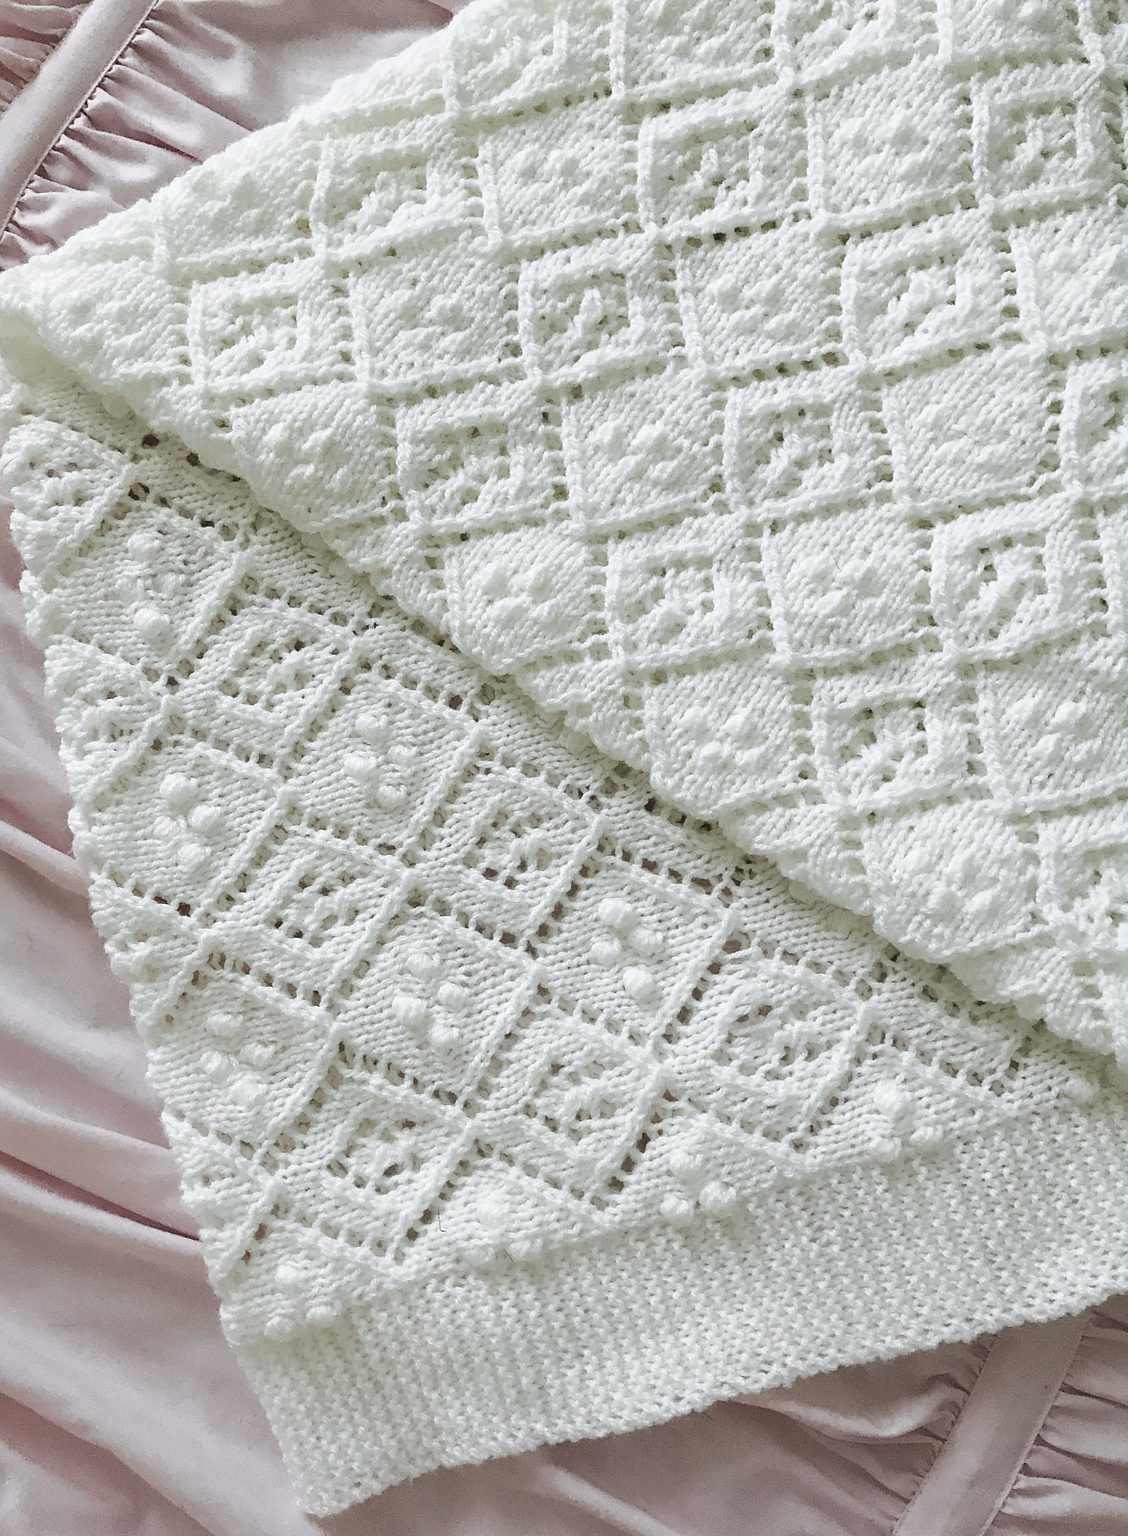 Baby Blanket Knitting Pattern Lovely A some Baby Blanket Knitting Patterns Of Lovely 48 Photos Baby Blanket Knitting Pattern